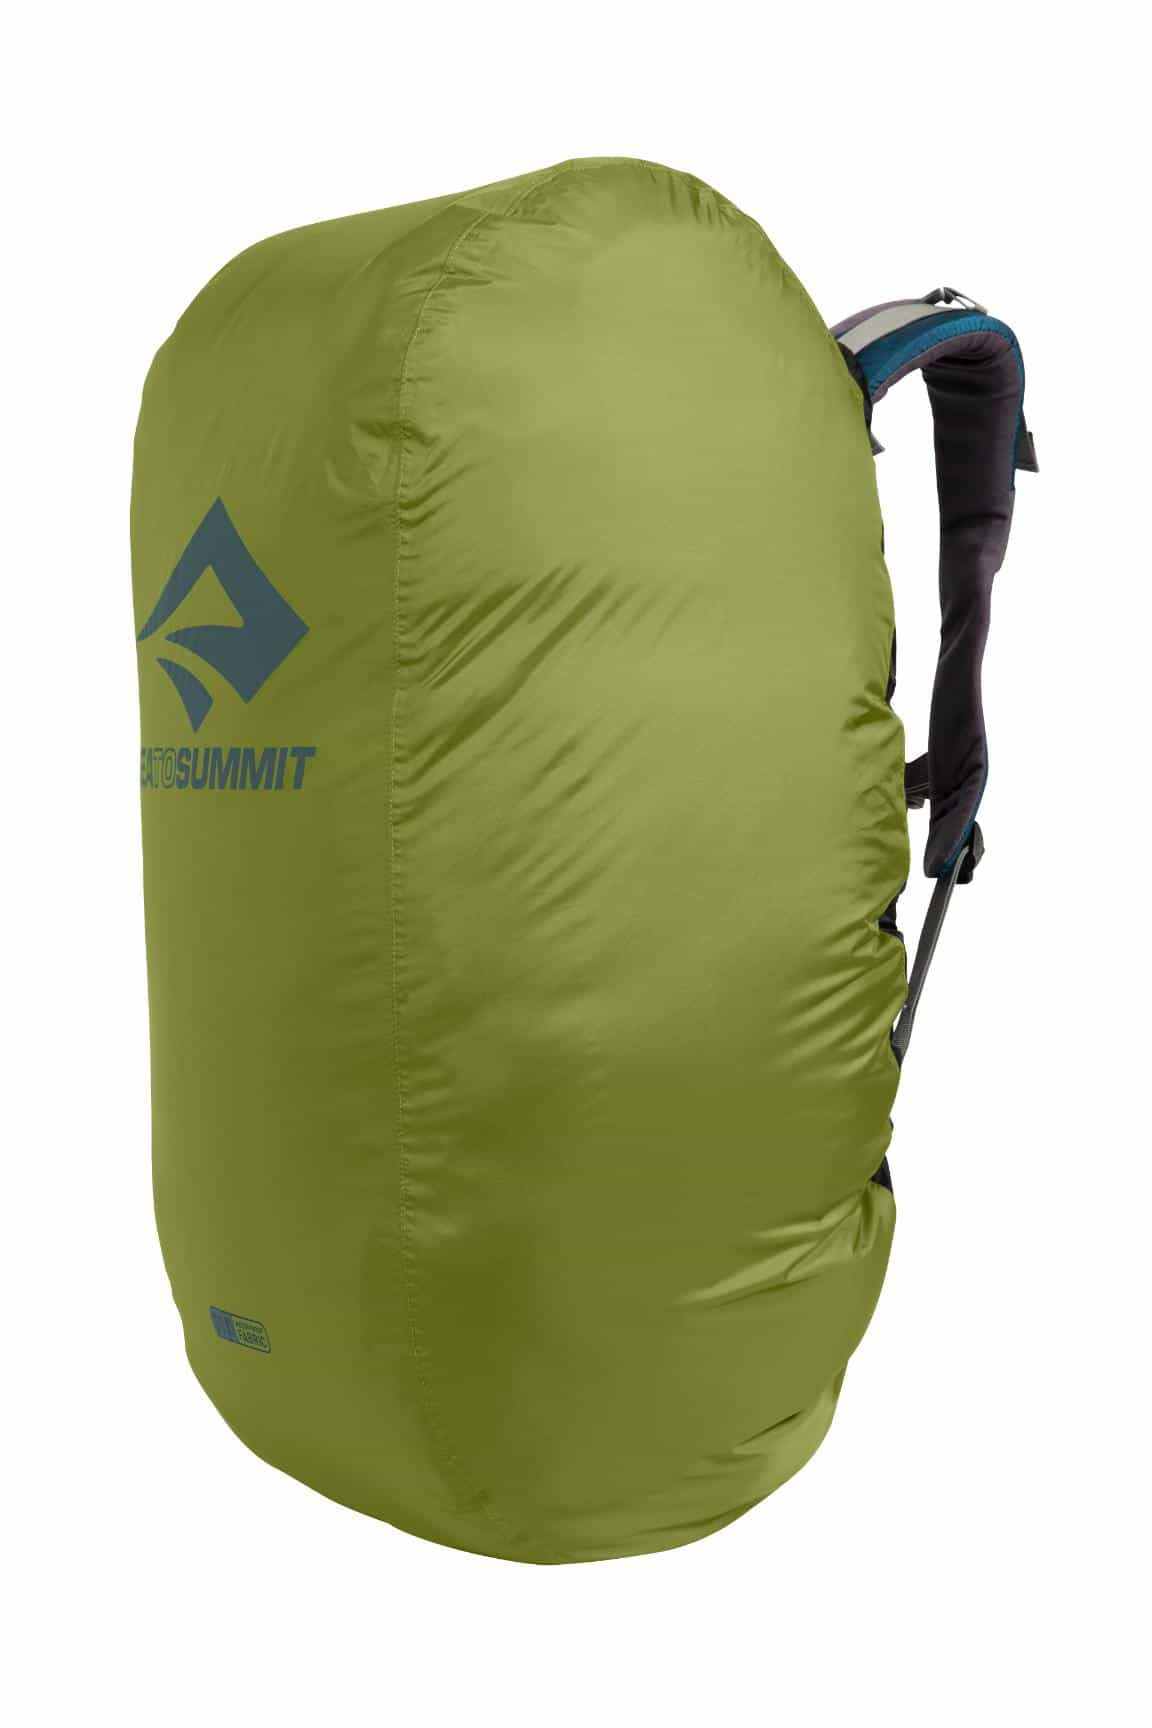 Sea to Summit-Pack Cover Large (70L-90L)